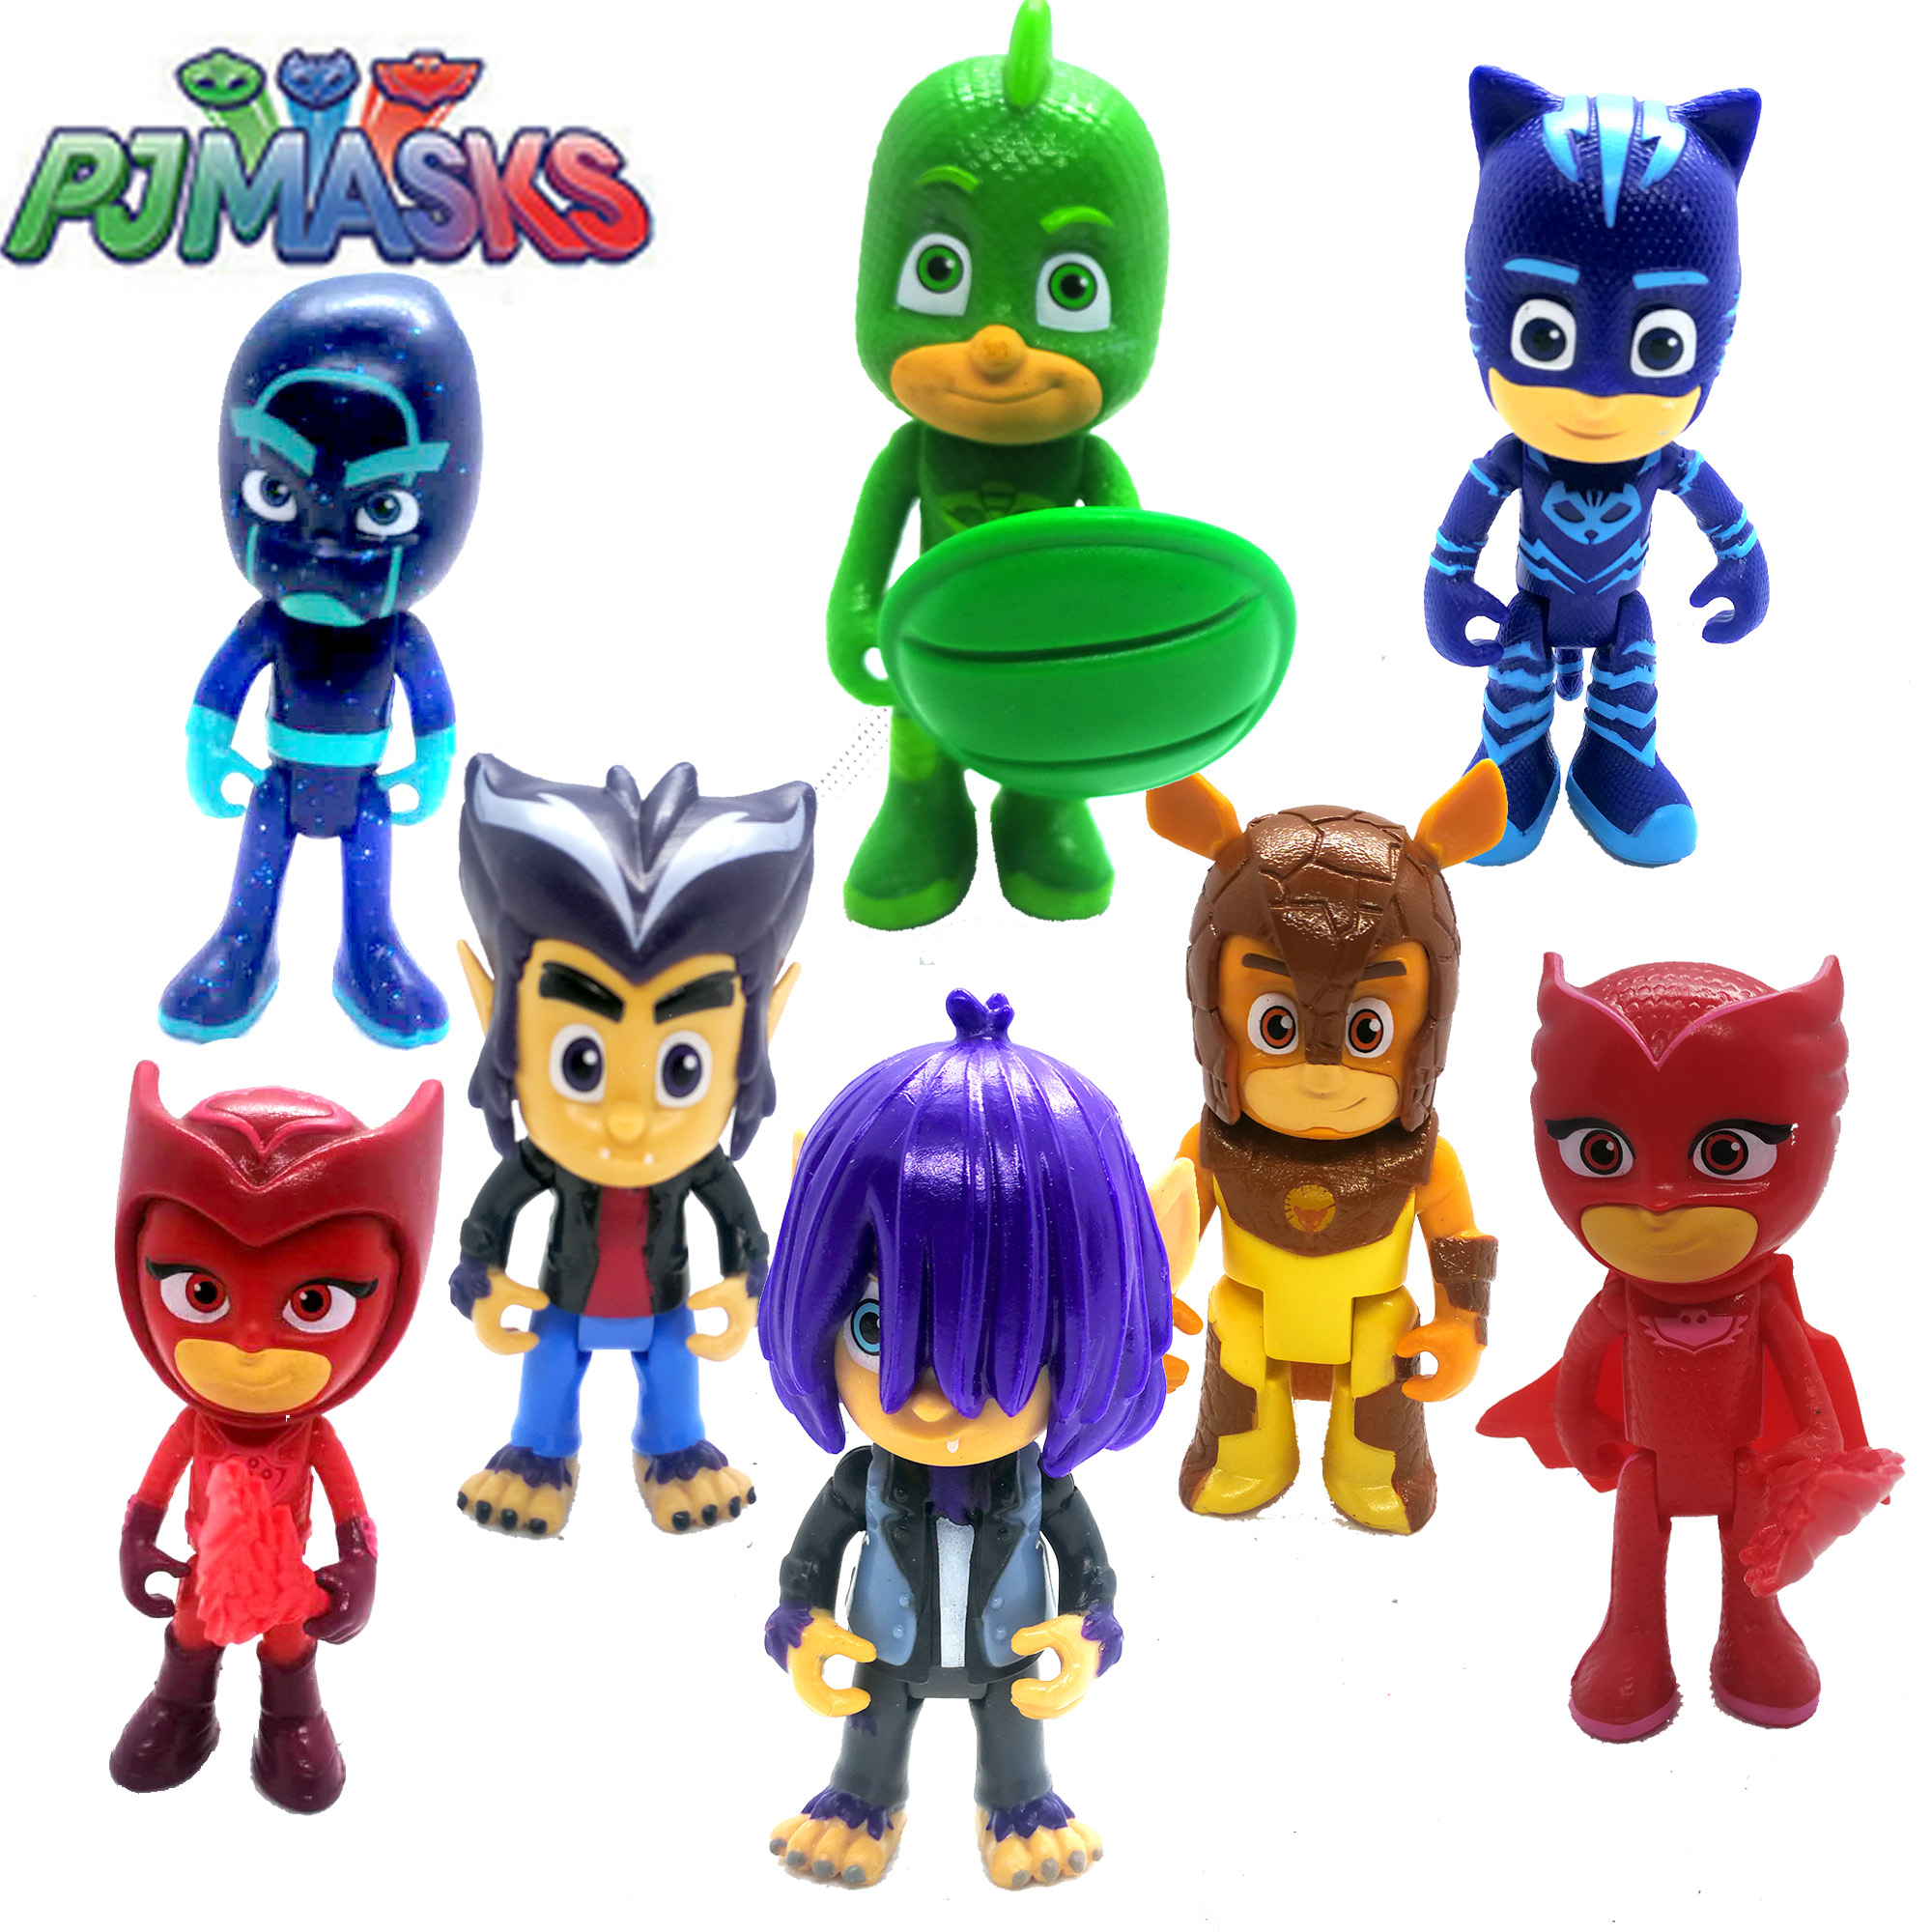 Genuine PJ Masks Figure Character Catboy Owlette Gekko Figures Anime With Arms Toys Birthday Gift OriginalToys For Children Boys